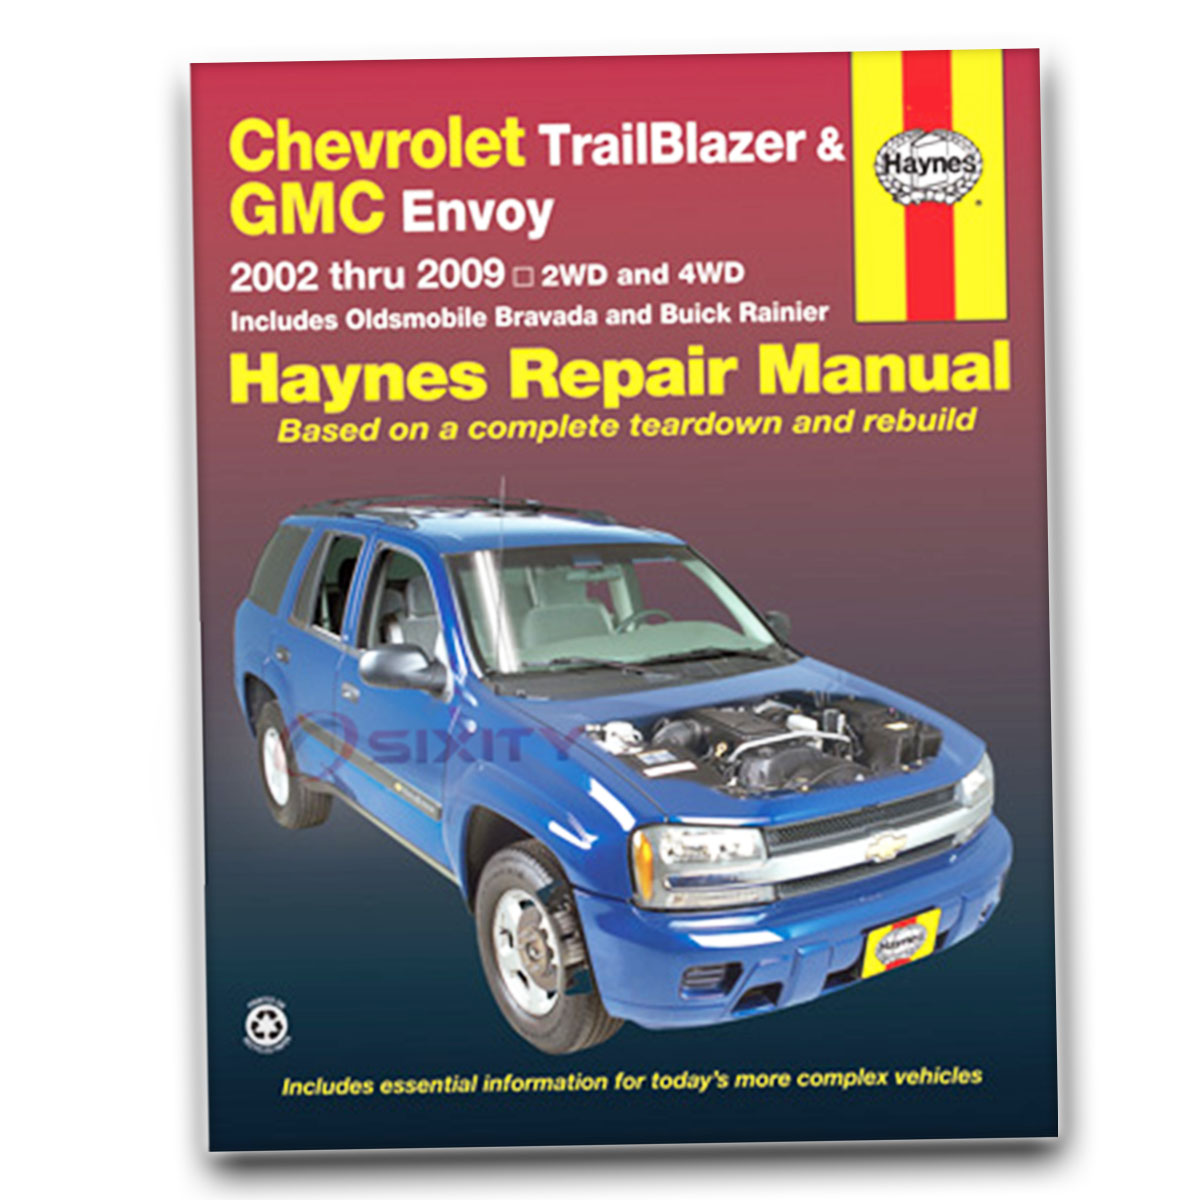 gmc envoy haynes repair manual denali sle slt shop service garage rh ebay com 2002 gmc envoy service manual 2002 gmc envoy owner's manual